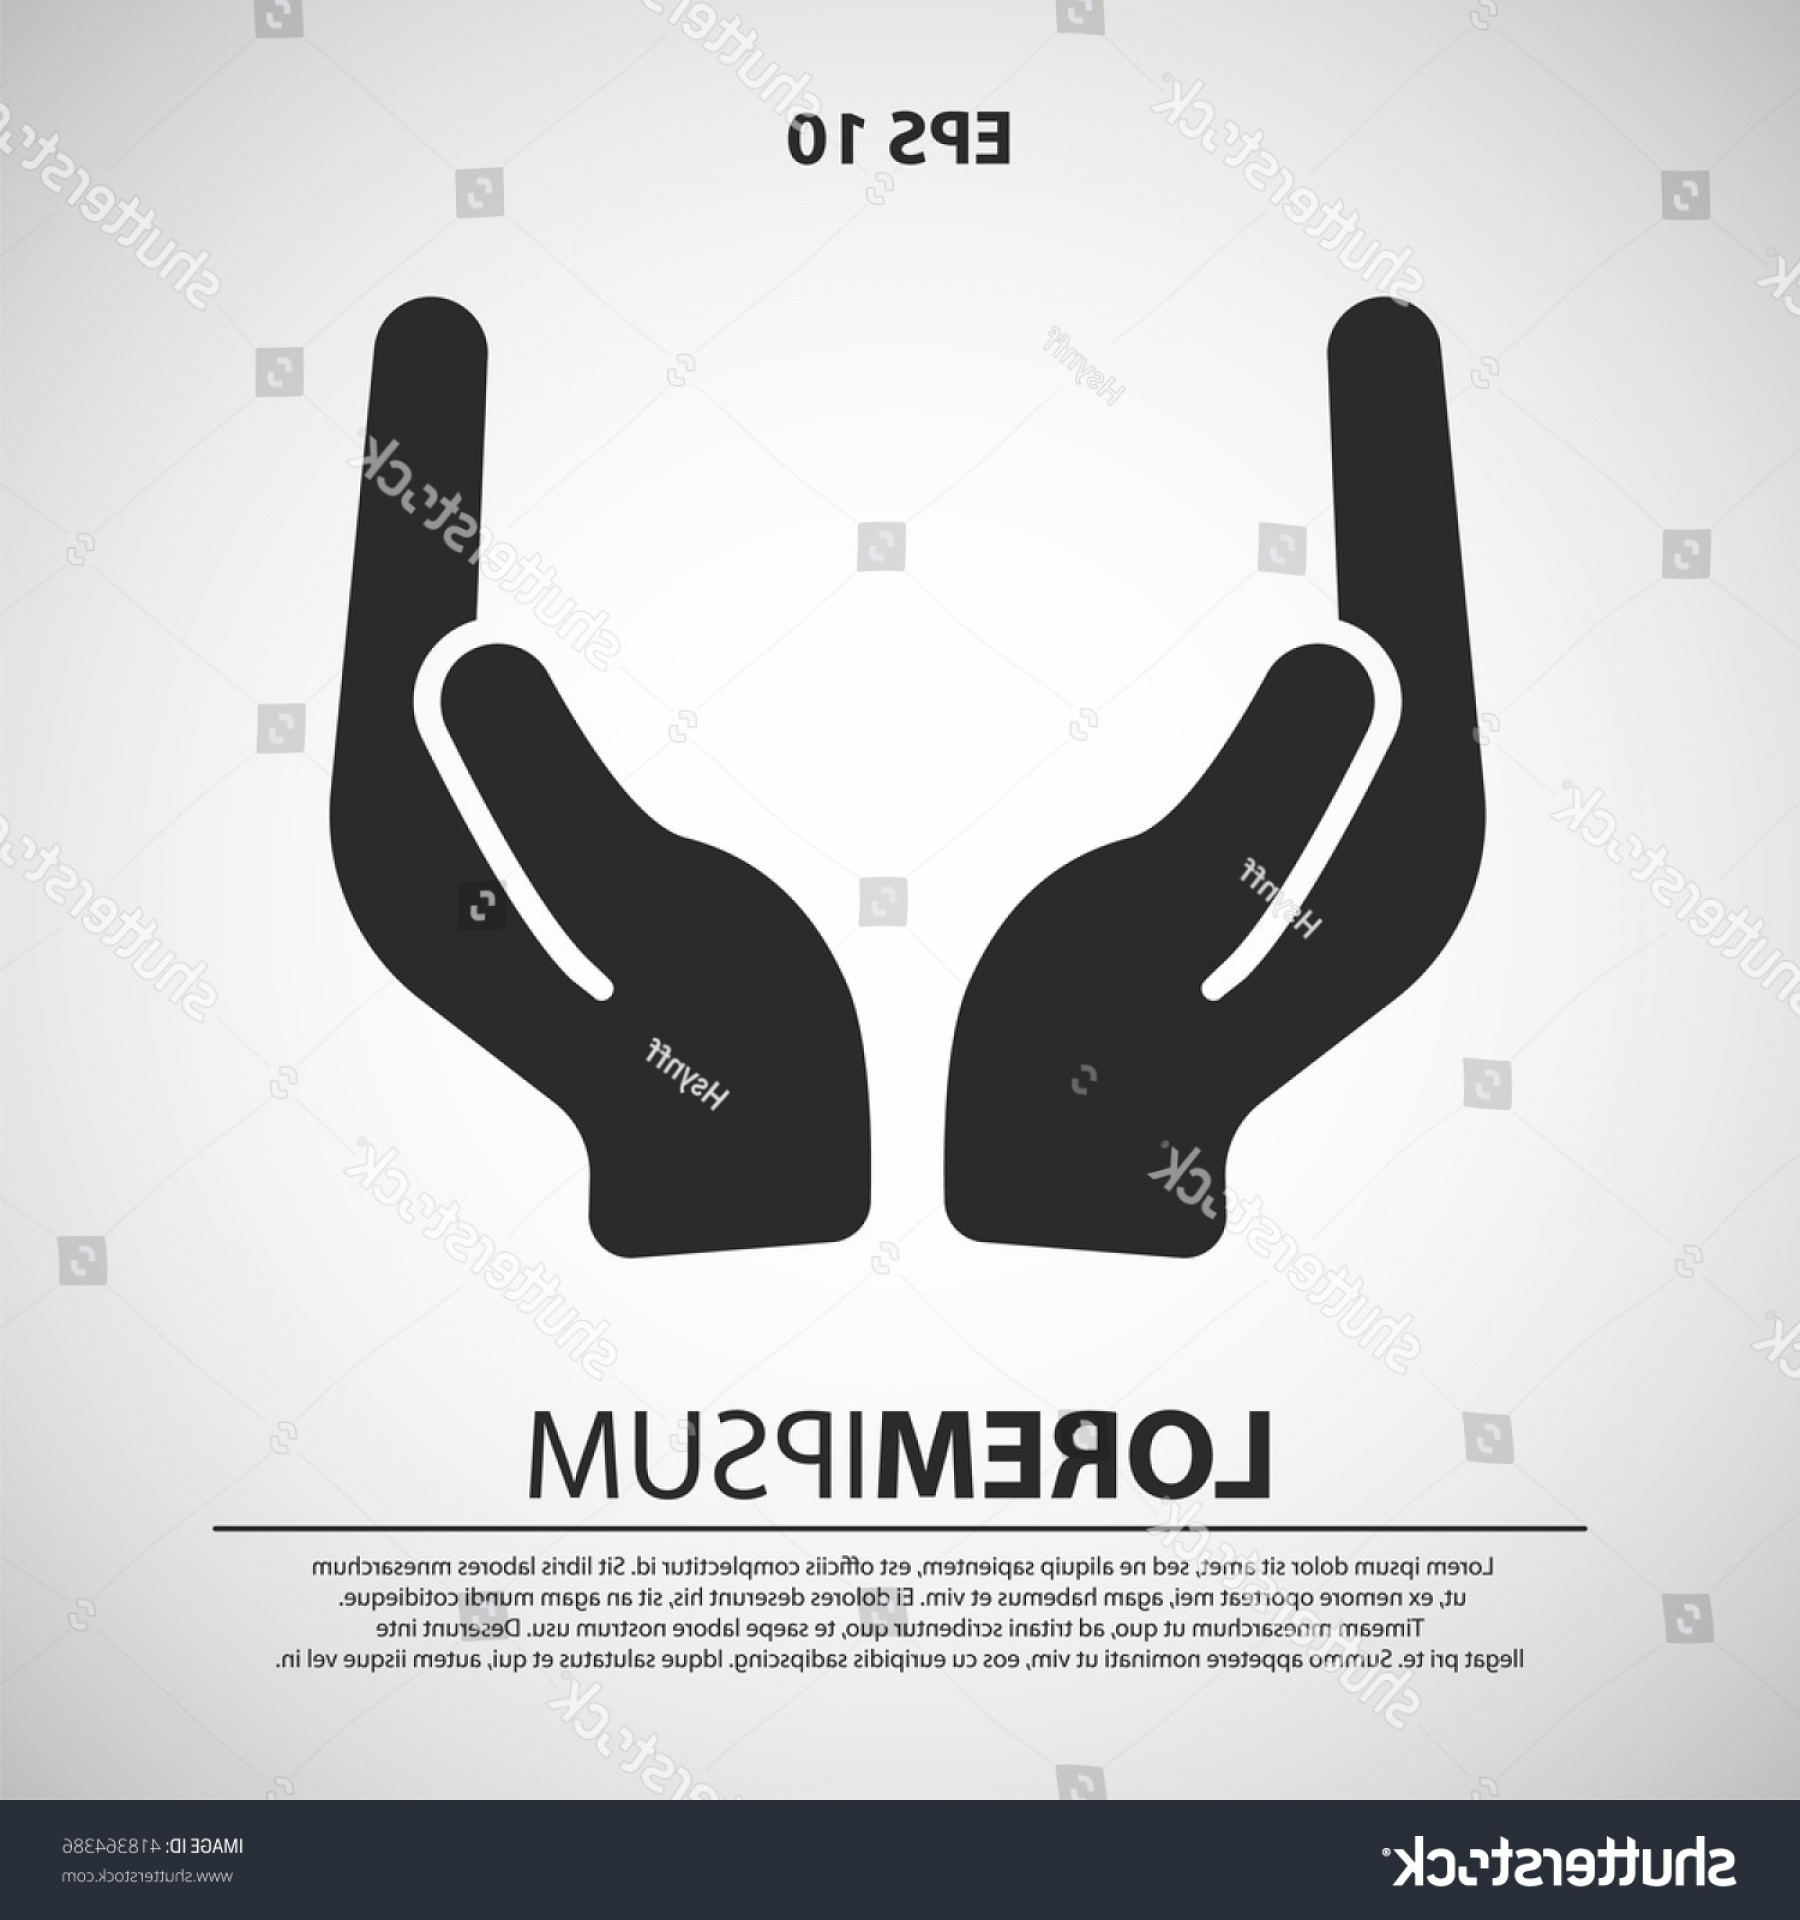 Praying Hands Vectors Shutterstock: Prayer Hand Icon Vector Illustration